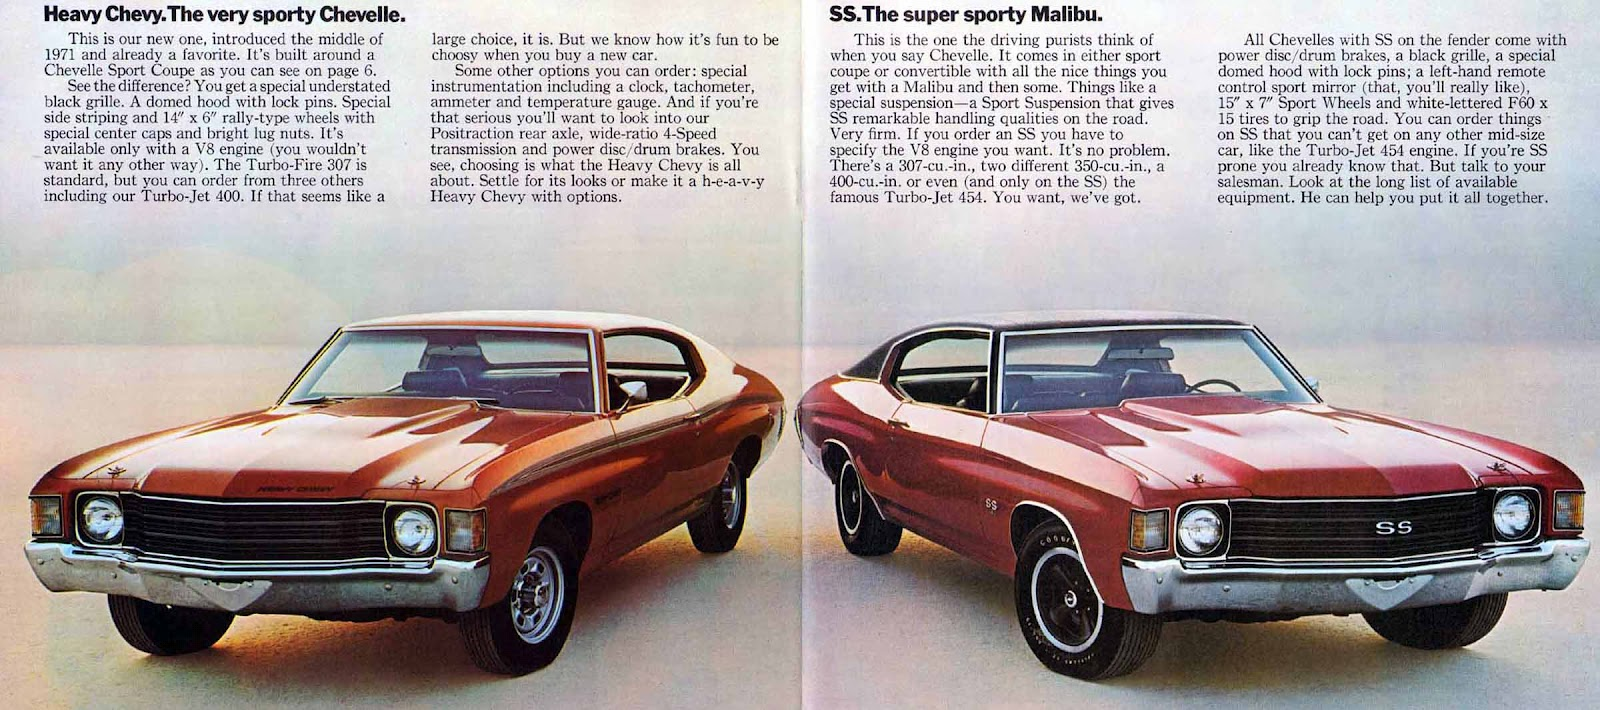 For 1972 heavy chevy made it into the chevelle catalog and was compared to the chevelle ss